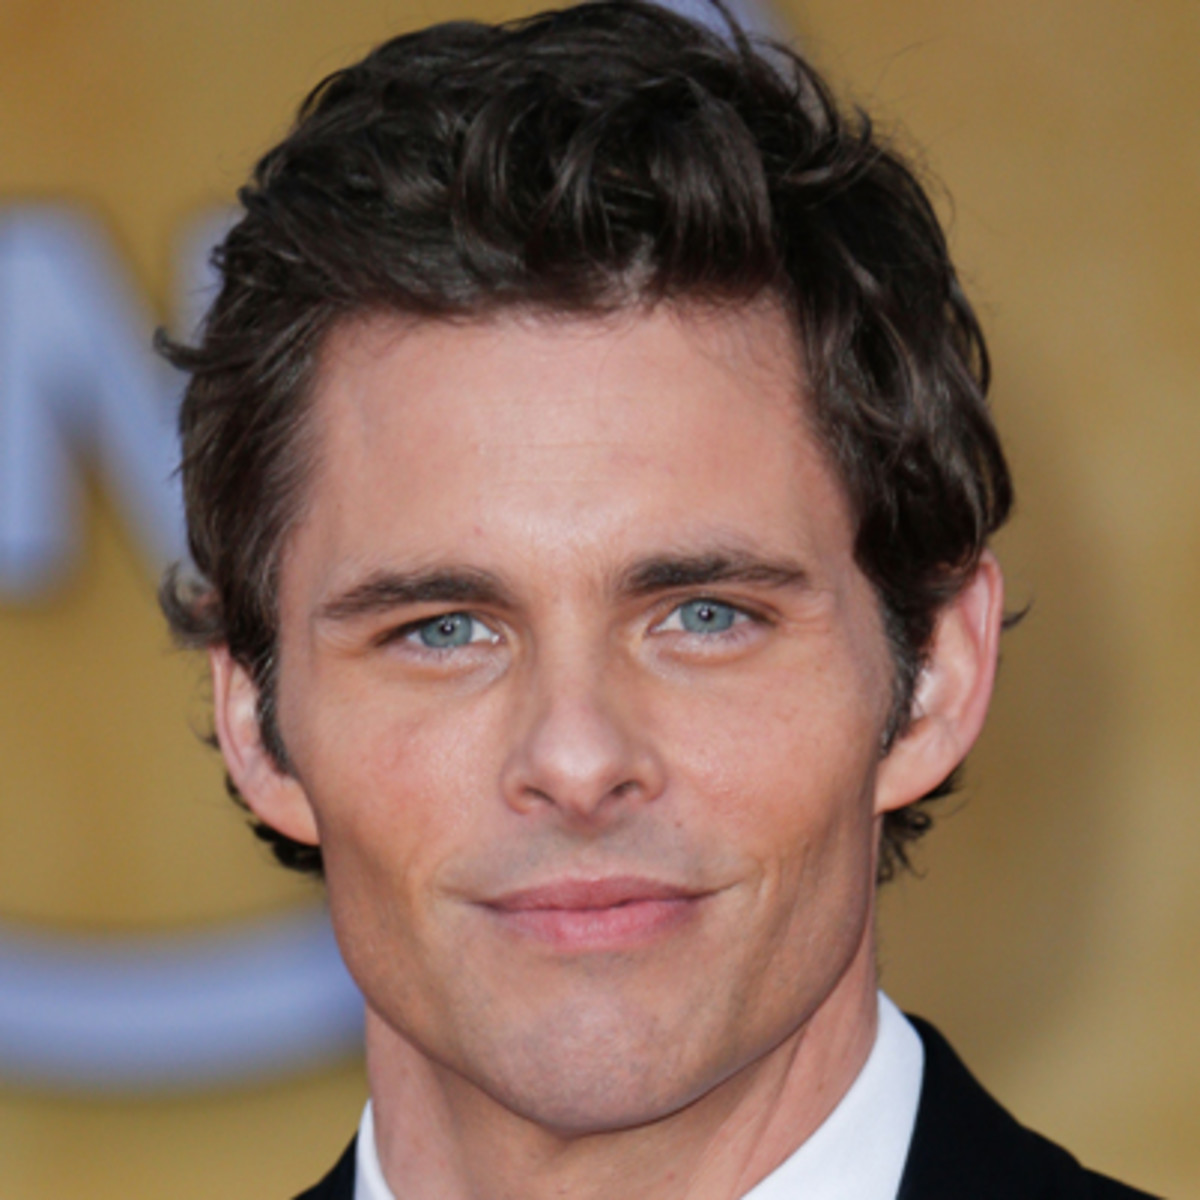 LOS ANGELES, CA - JANUARY 27:  Actor James Marsden attends the 19th Annual Screen Actors Guild Awards at The Shrine Auditorium on January 27, 2013 in Los Angeles, California.  (Photo by Imeh Akpanudosen/Getty Images)